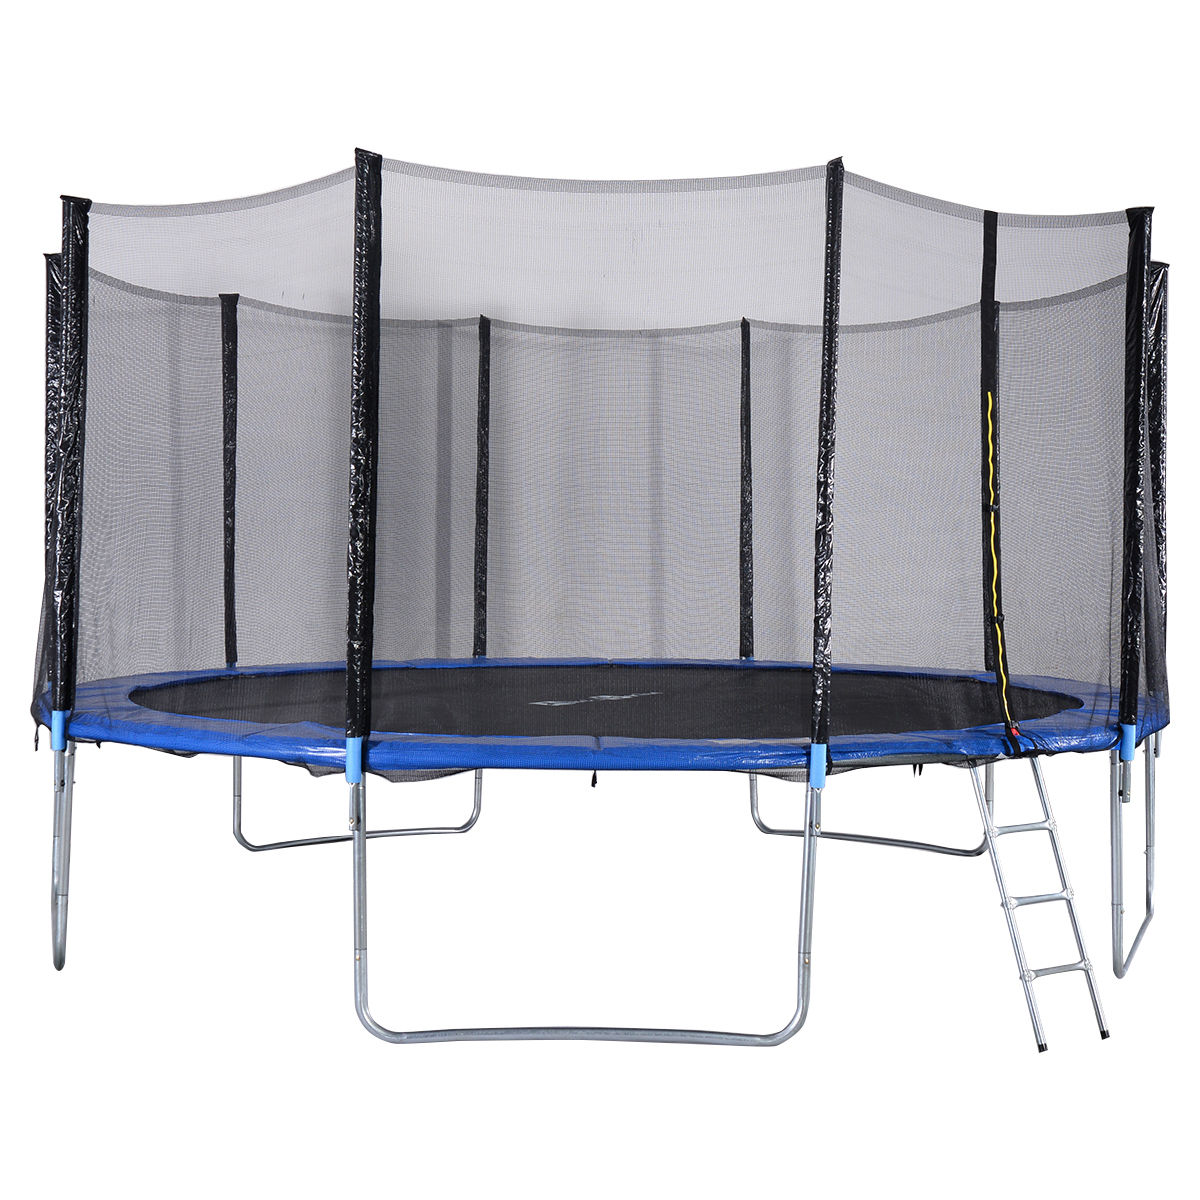 New Heavy Duty Trampoline 14 Ft With Ladder Safety Net: New 15FT Trampoline Combo Bounce Jump Safety Enclosure Net